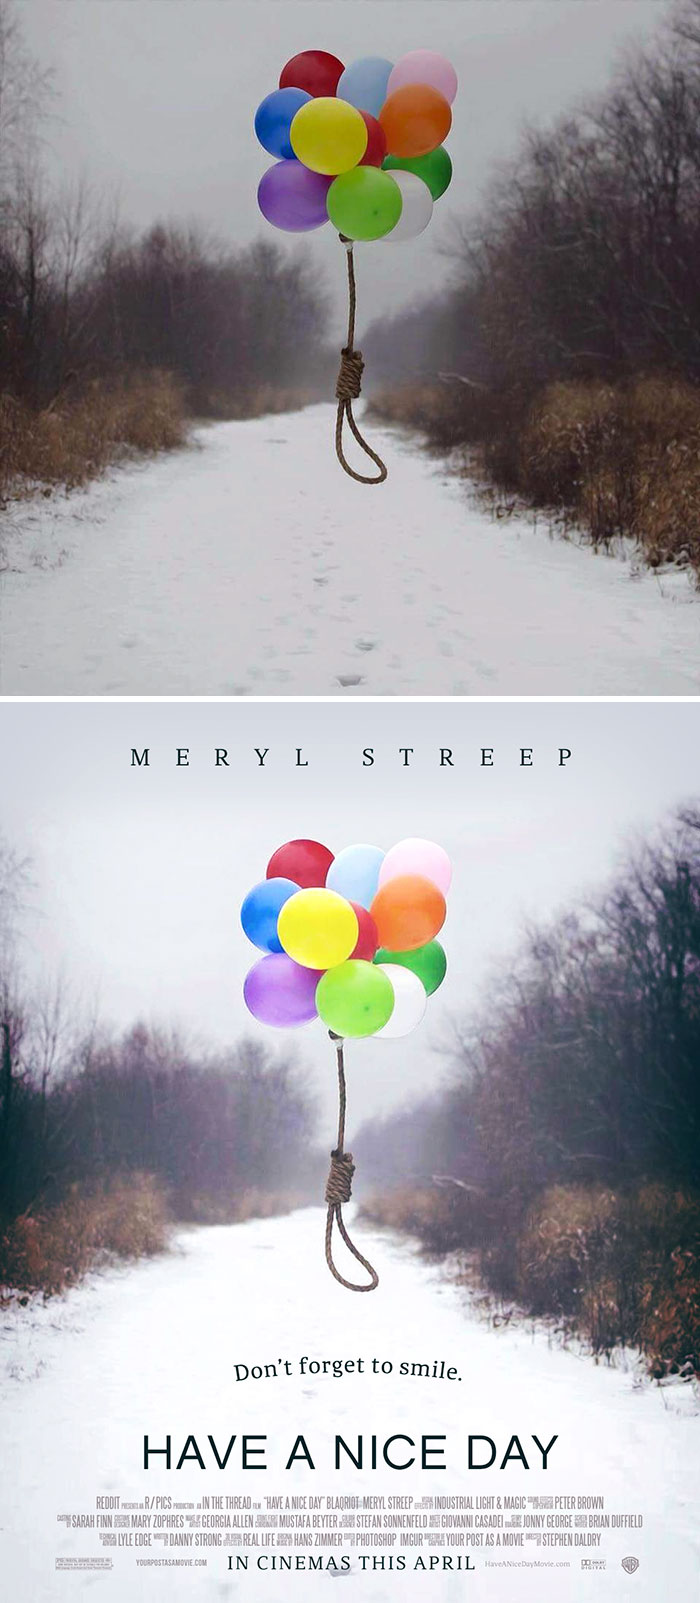 random-people-images-turned-into-movie-posters-your-post-as-a-movie-28-57bd81849a772__700